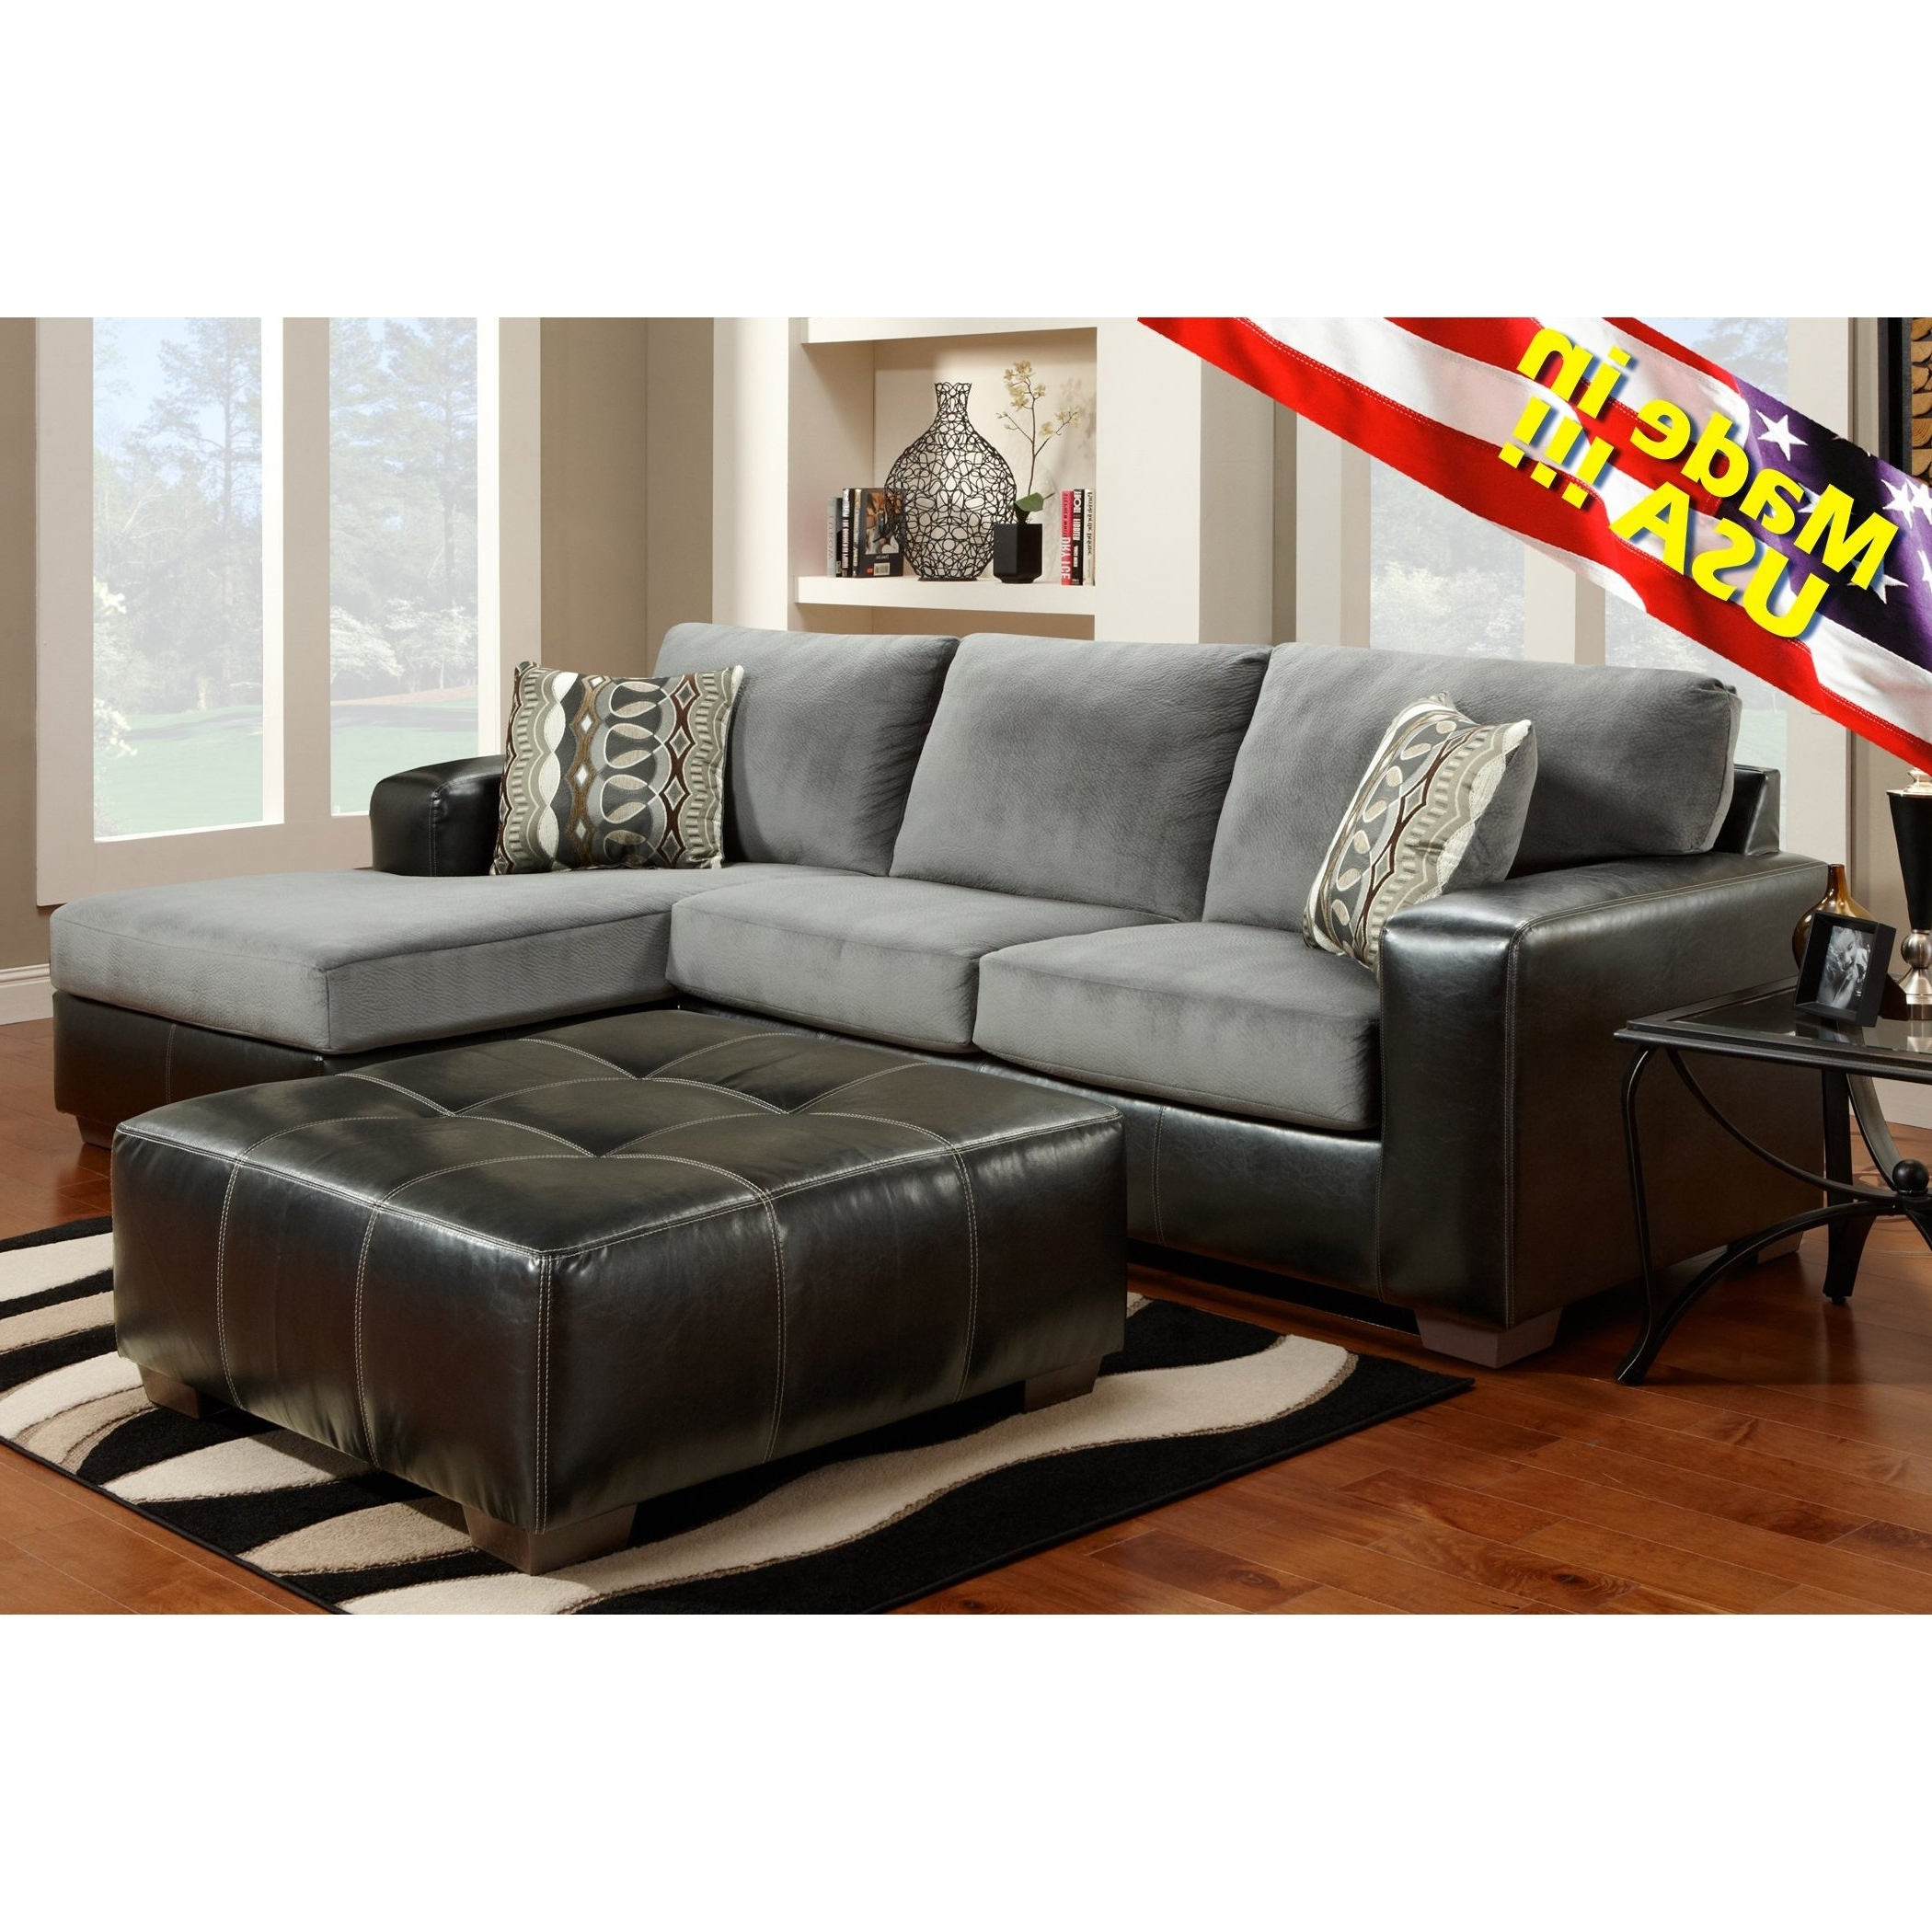 Made In Usa Sectional Sofas Regarding 2017 Cumulus Black Gray Two Toned Sectional Sofa Chaise Set, Made In (View 10 of 15)